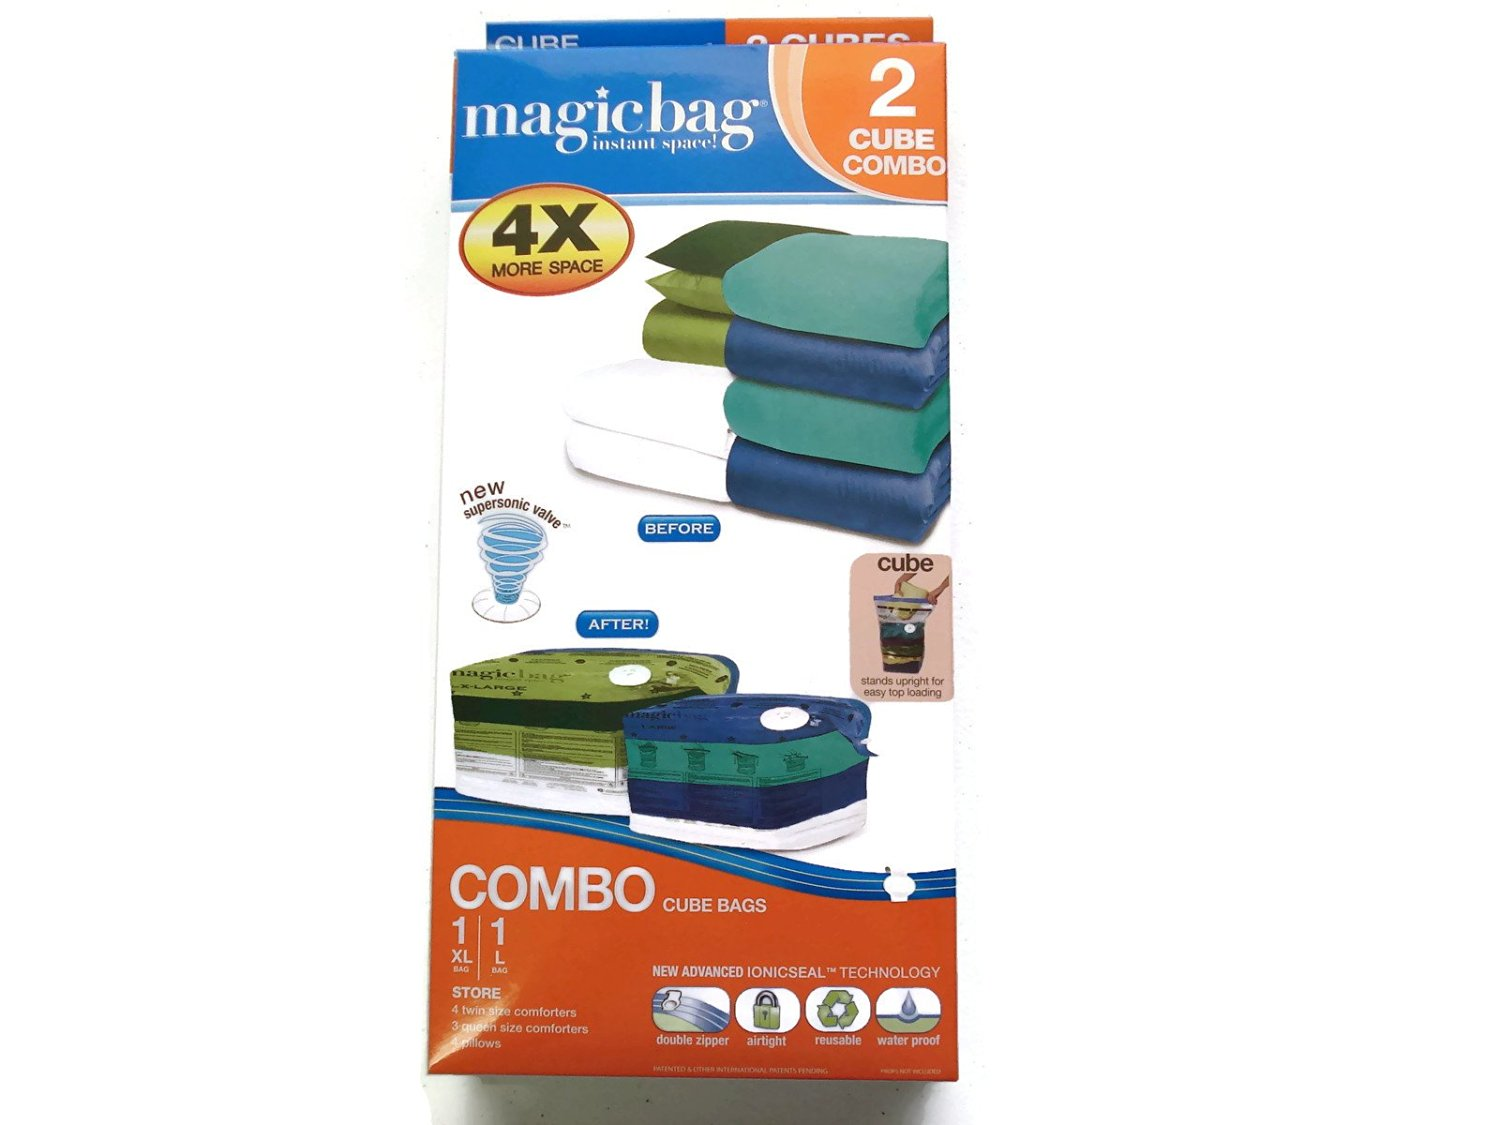 ddf3104e4e3 Get Quotations · MagicBag Instant 2 CUBE Combo Pack Space Saver Vacuum  Storage Bags  One X-Large